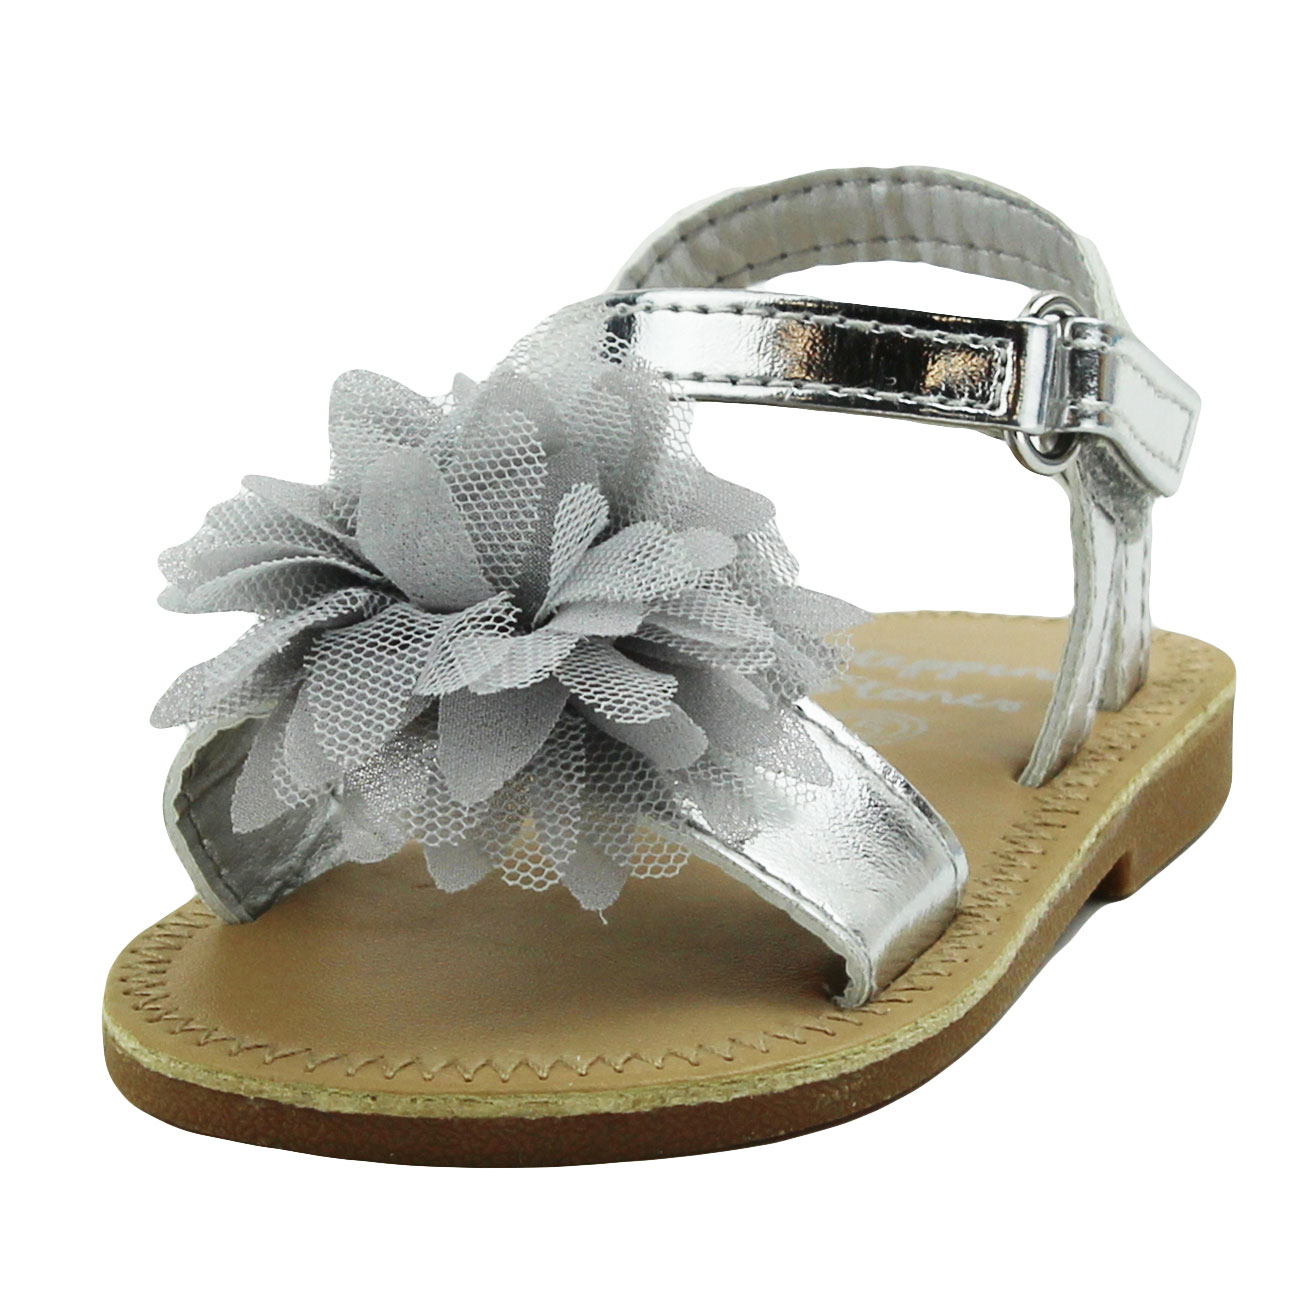 ... Girls Gladiator Silver Sandals with Flower and Back Straps Girls  Strappy Sandals For Casual or Dress Open Toe Summer Sandals Infant Toddler  Kids Shoes ... 46f72afd2f86